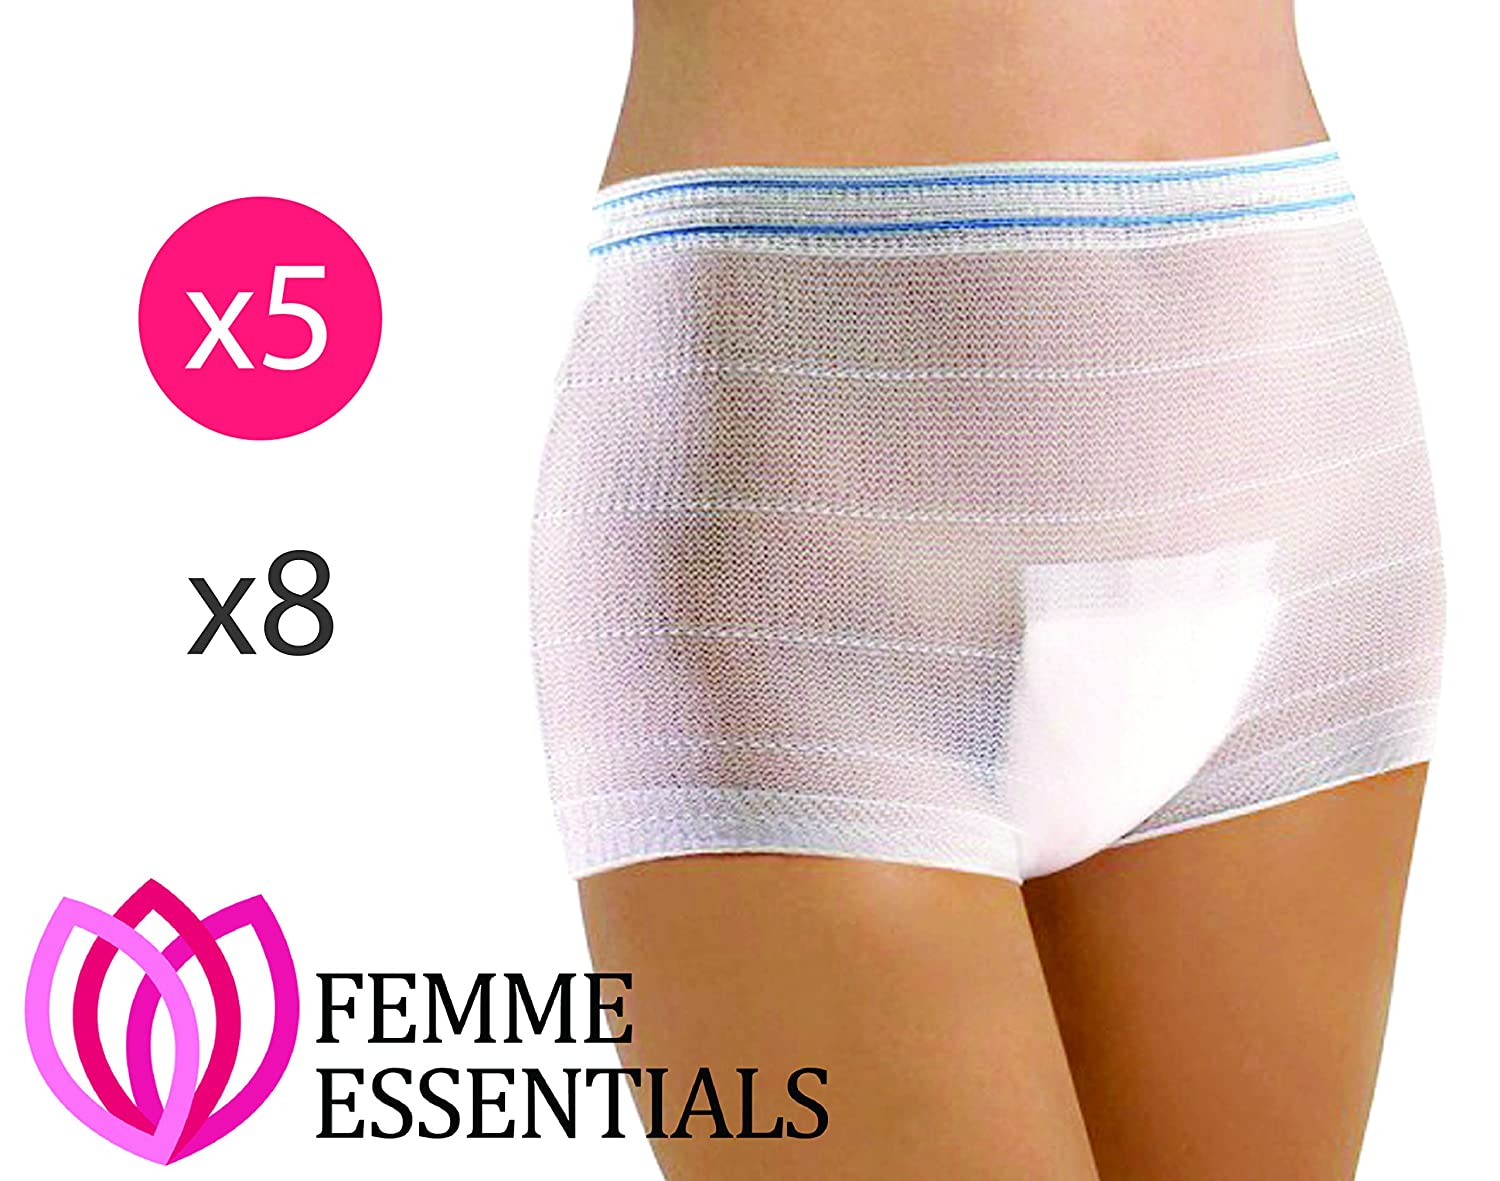 Femme Essentials Women's Maternity Knickers